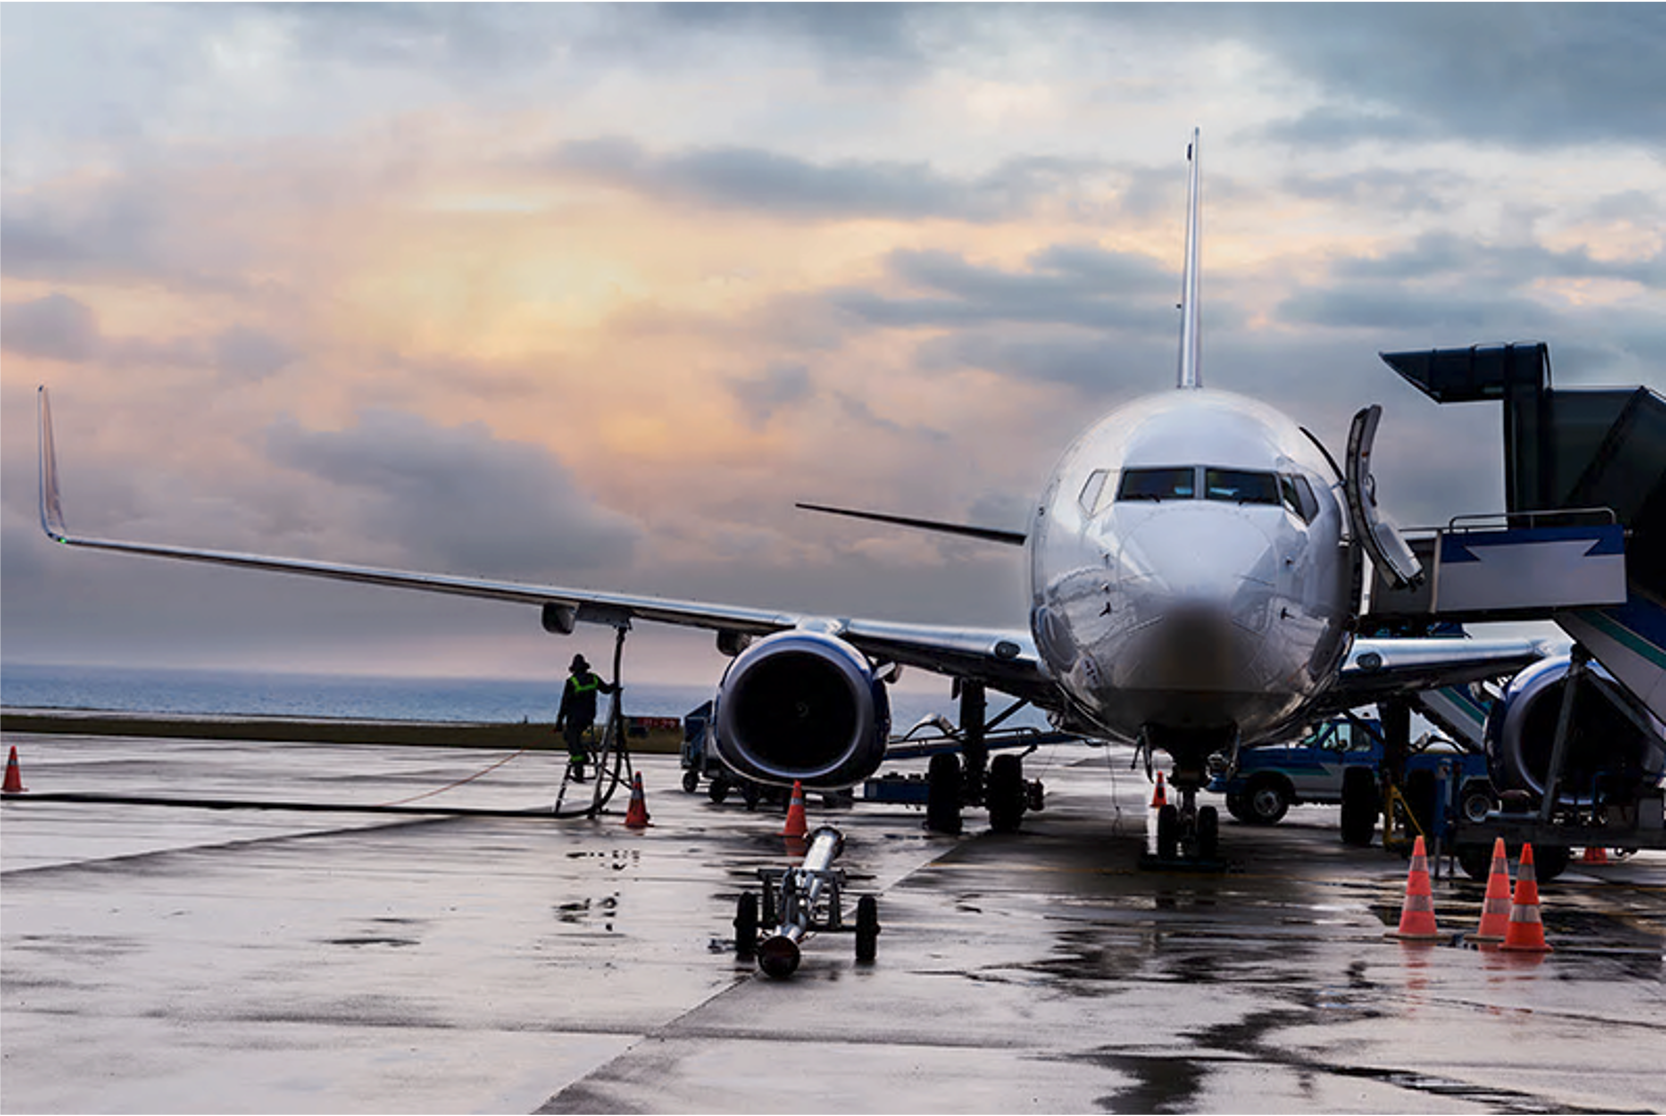 Meet infrastructure requirements and delight air travellers